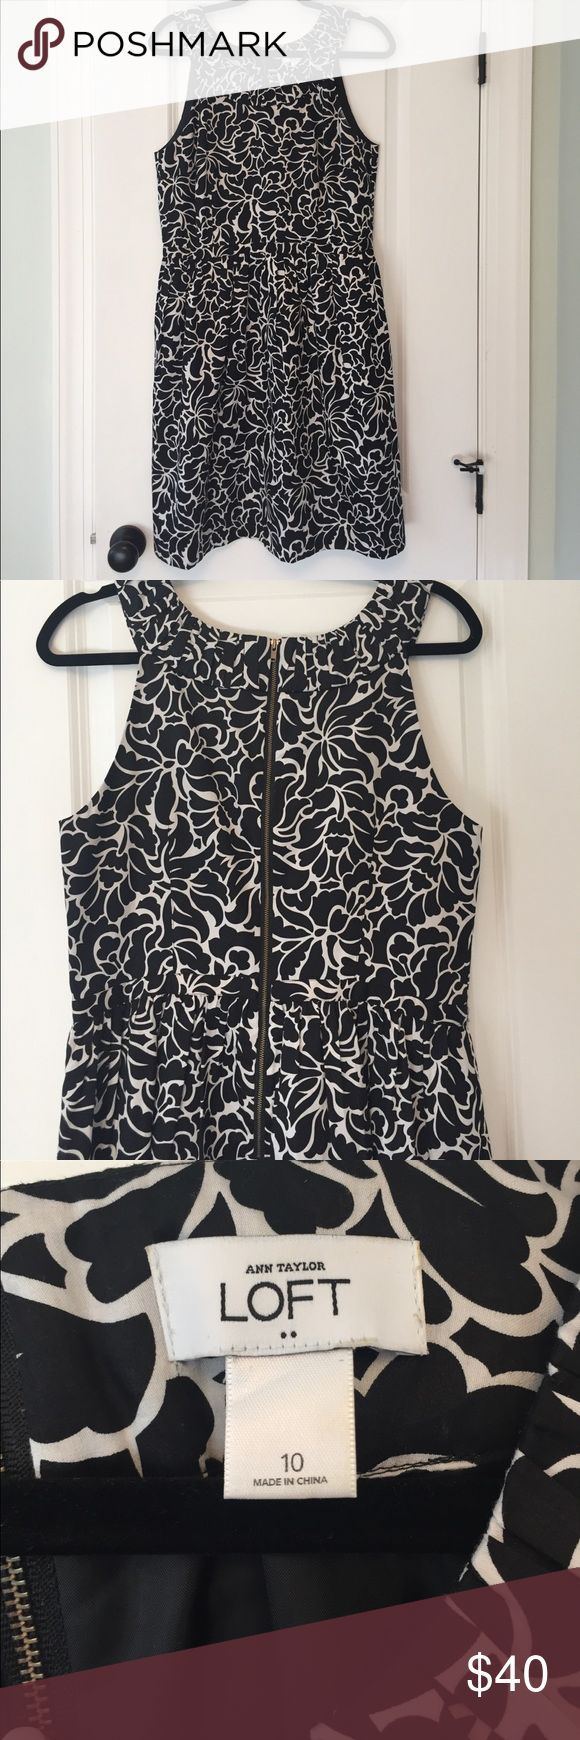 Ann Taylor LOFT dress with pockets! Fully lined dress, flattering cut! Has pockets!! Perfect for a wedding! Only worn once! LOFT Dresses